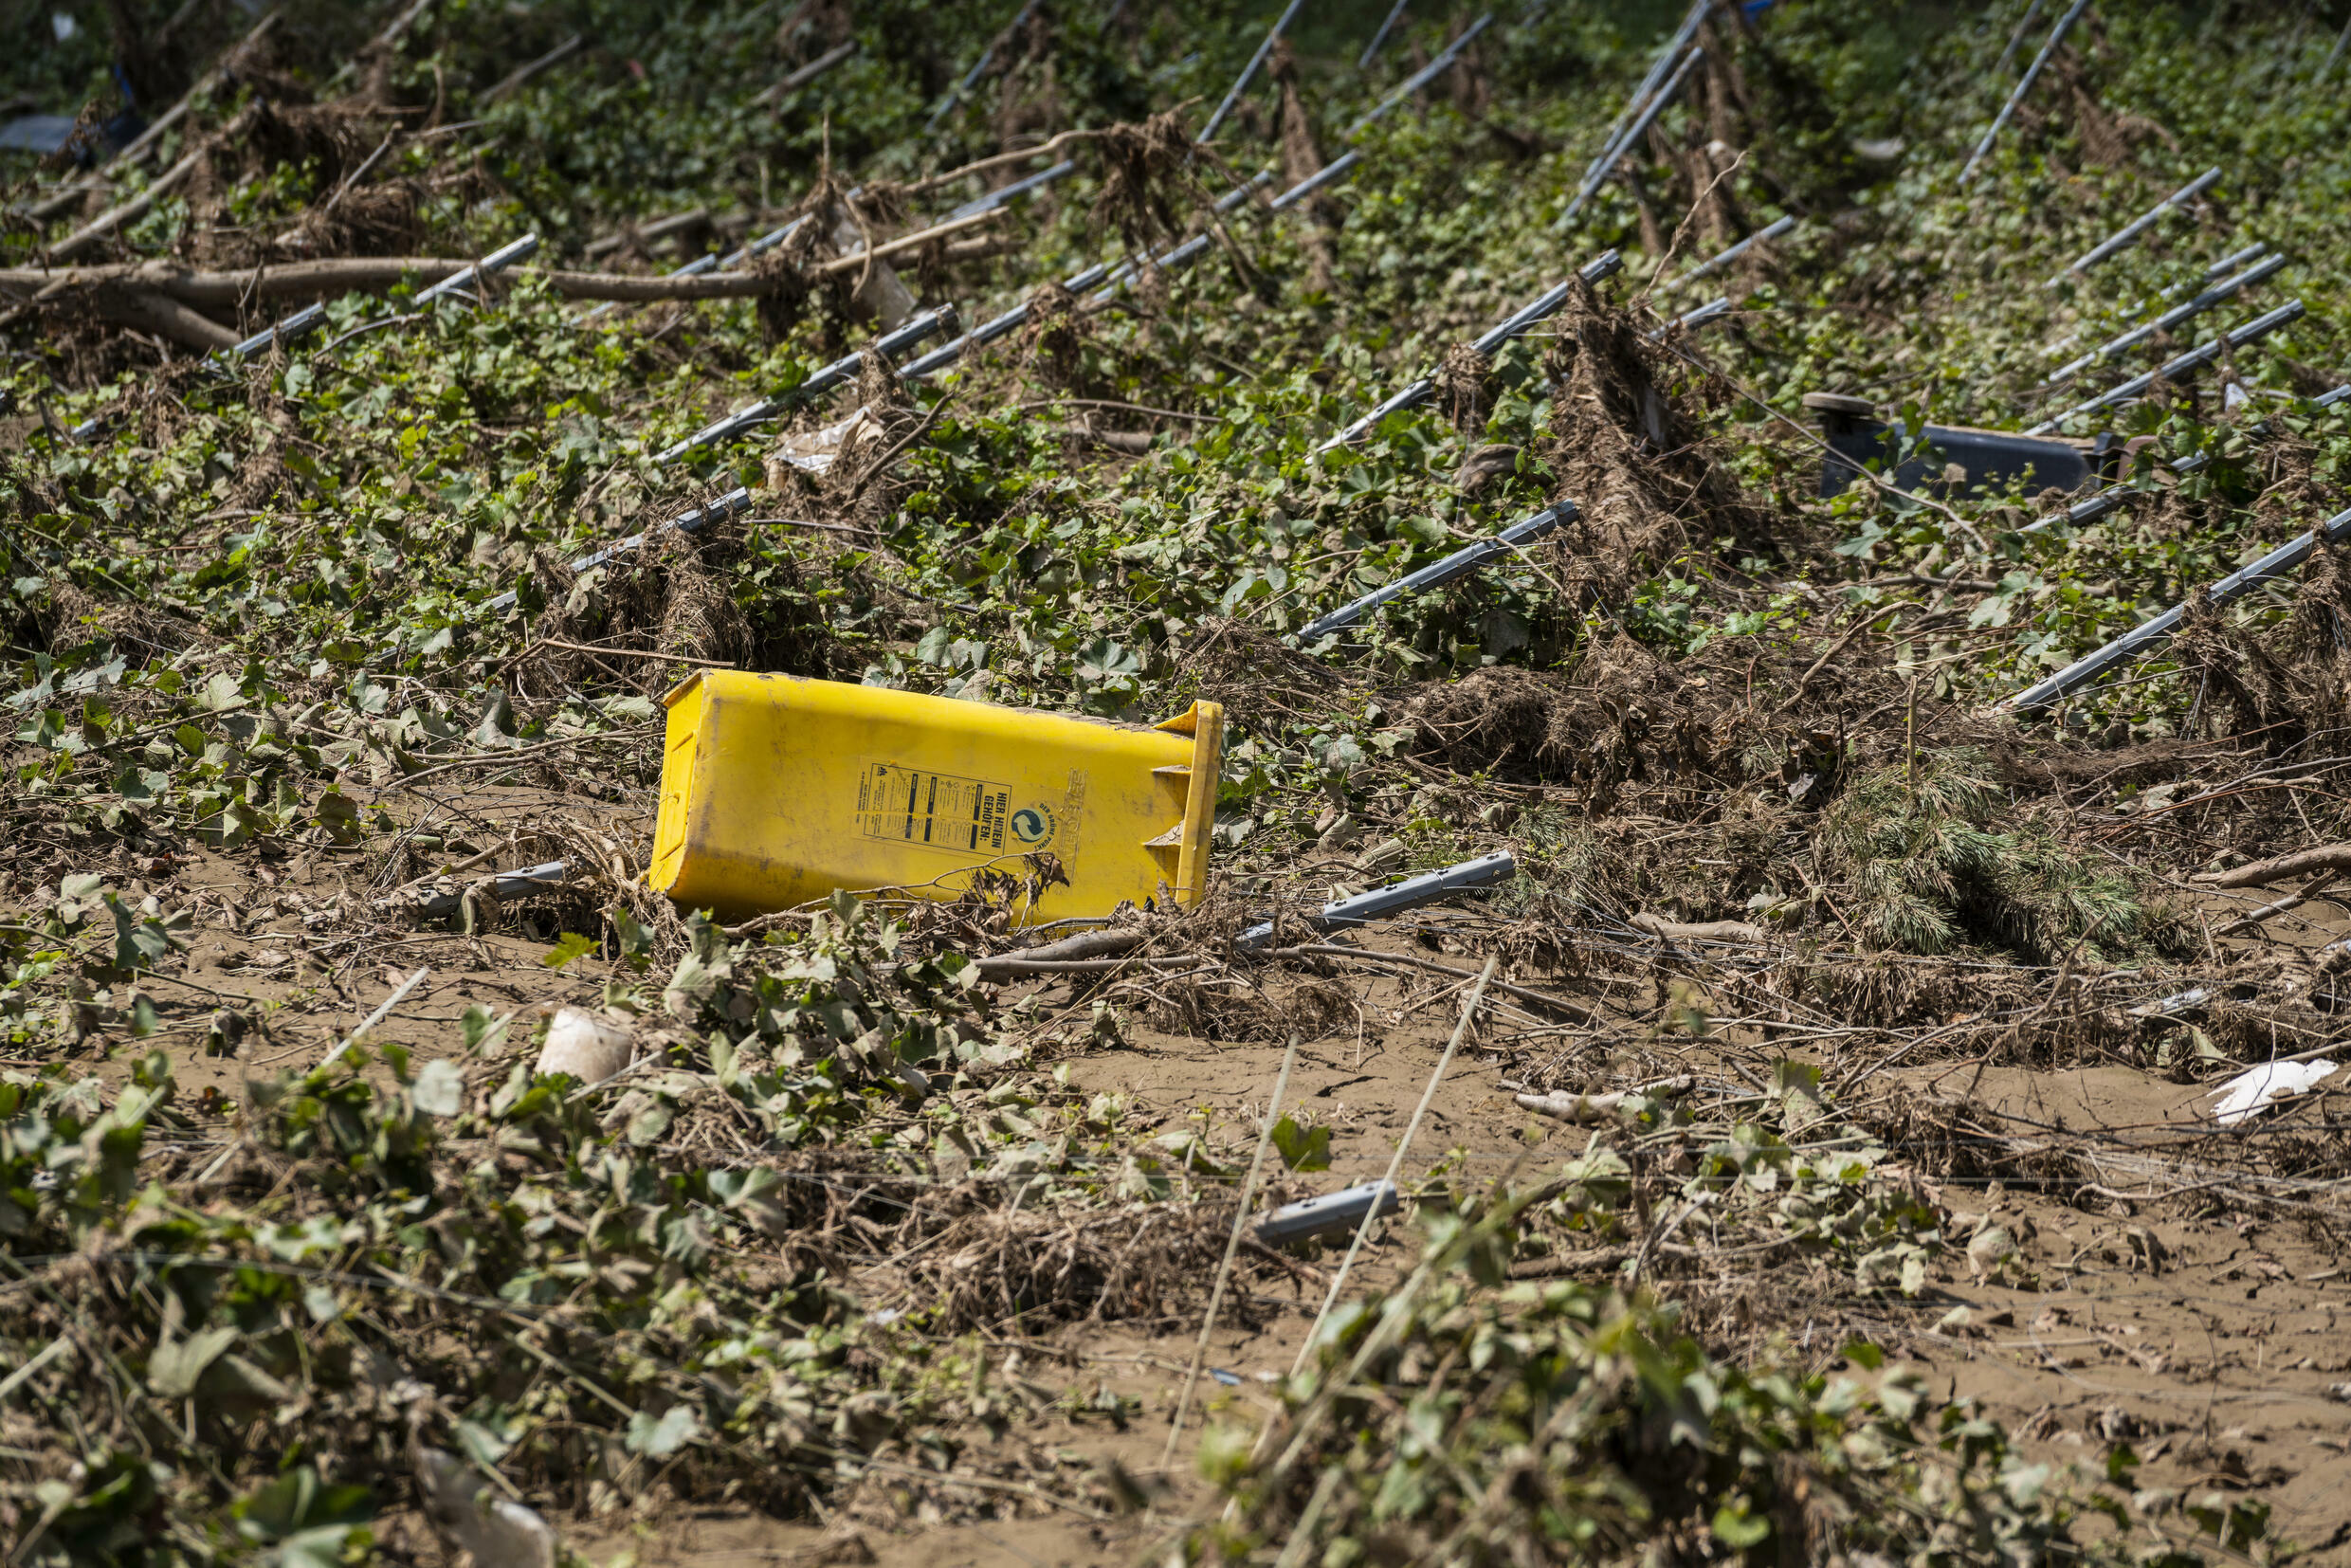 Wine production in the Ahrweiler region remains very uncertain